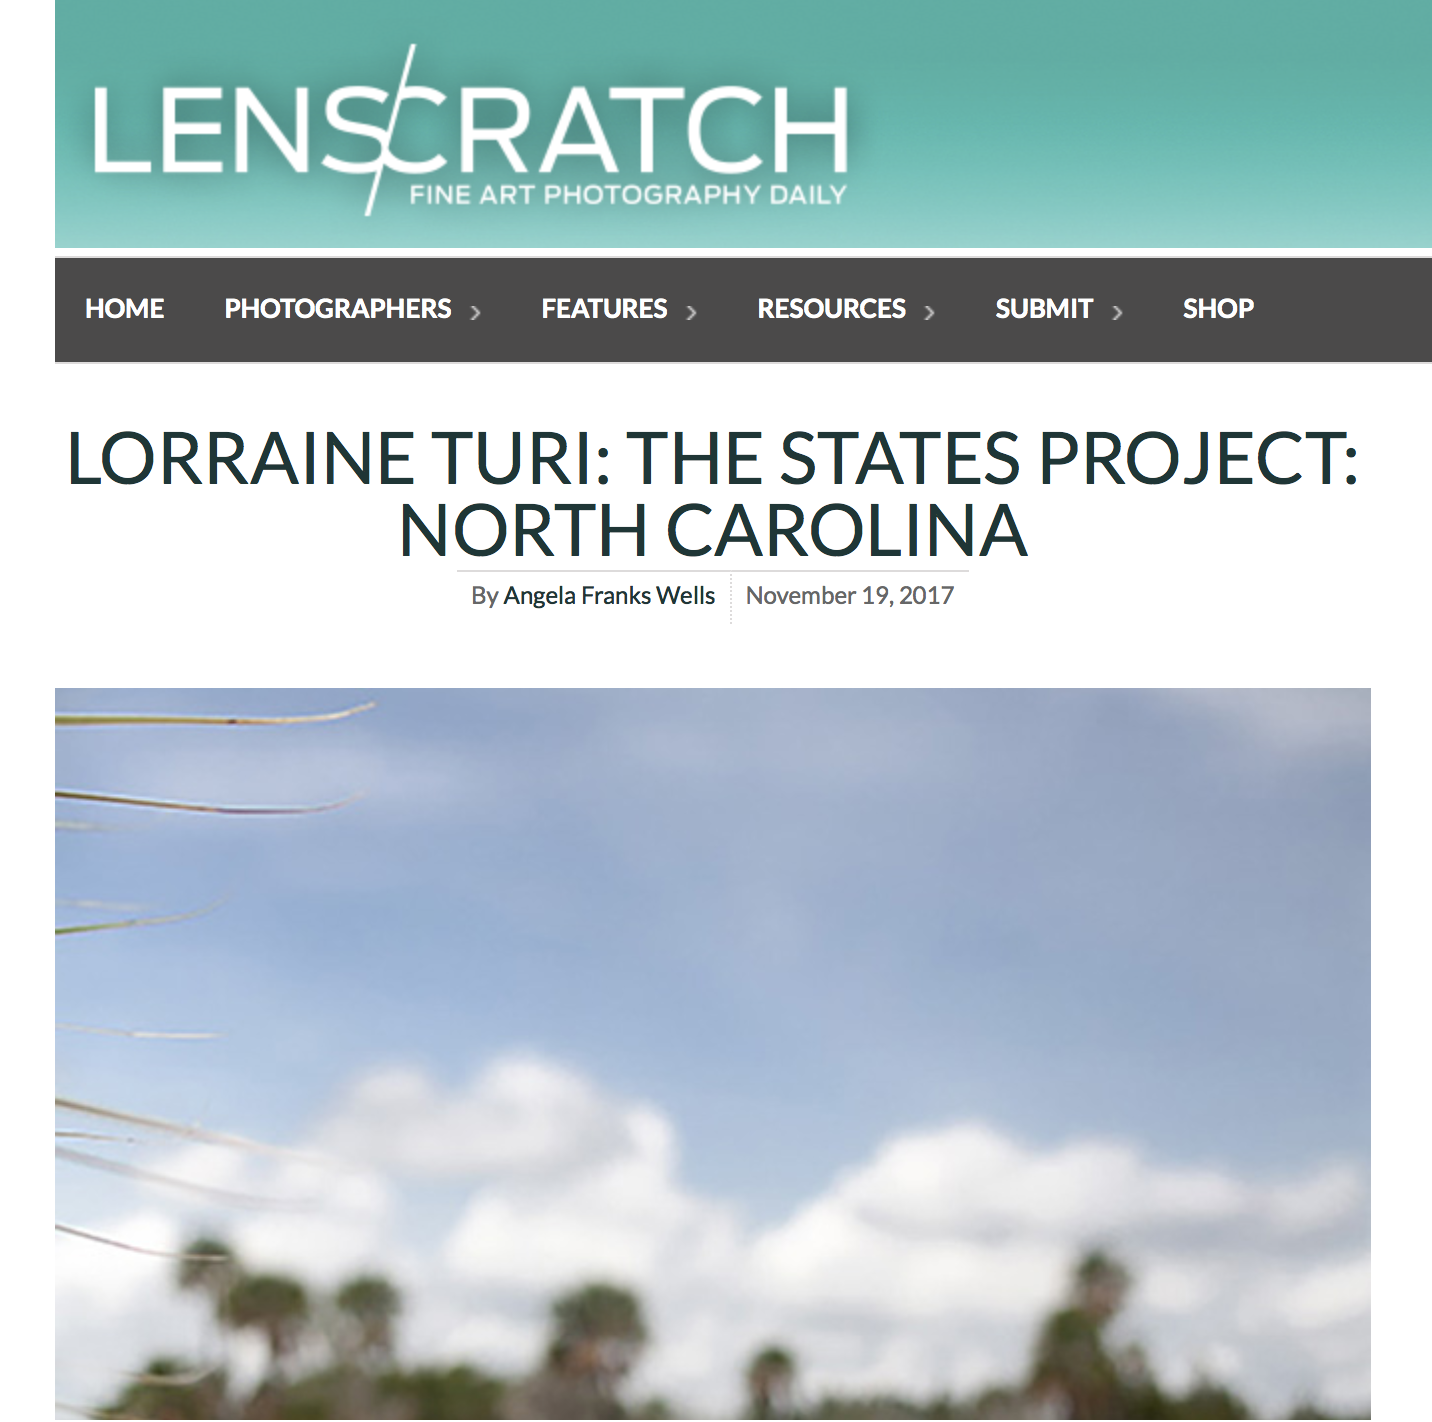 Last Seen apart of the Lenscratch: States Project: North Carolina